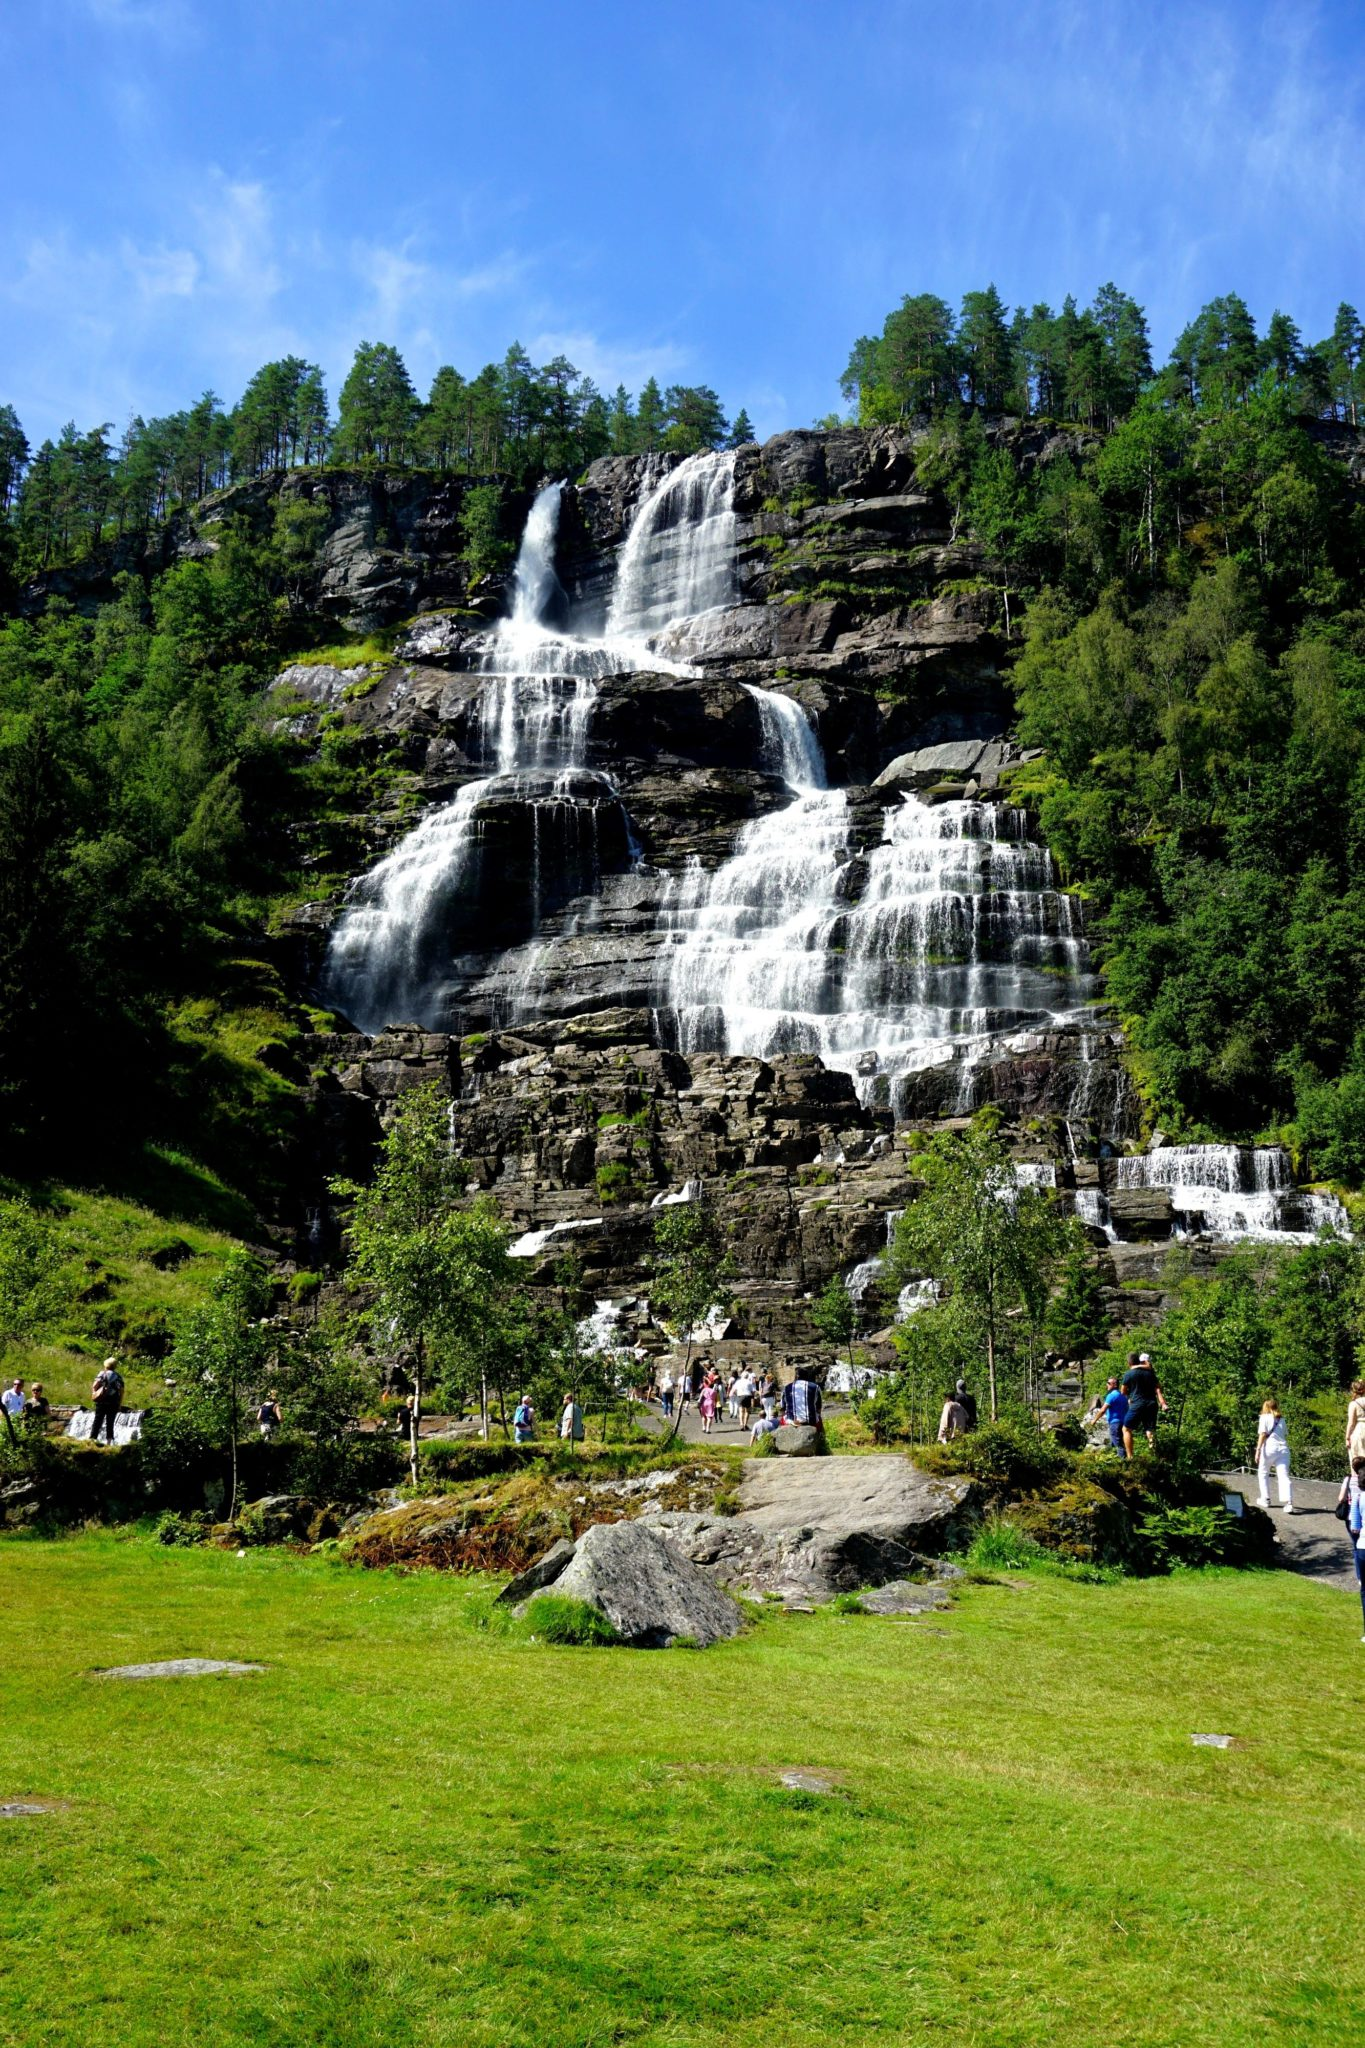 The Tvindefossen in Norway.